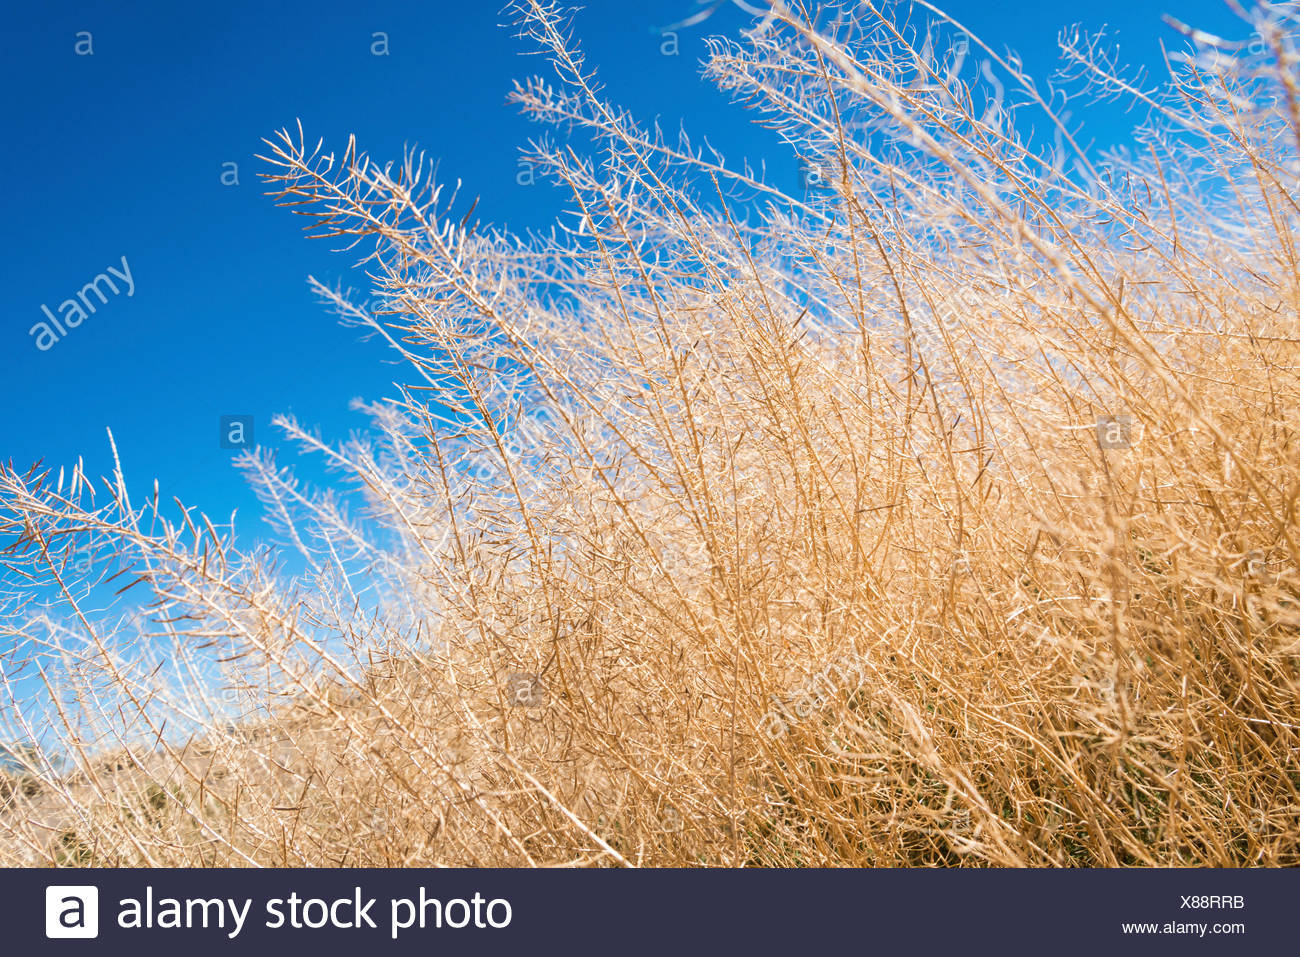 Dried up shrubbery, drought, dry season - Stock Image